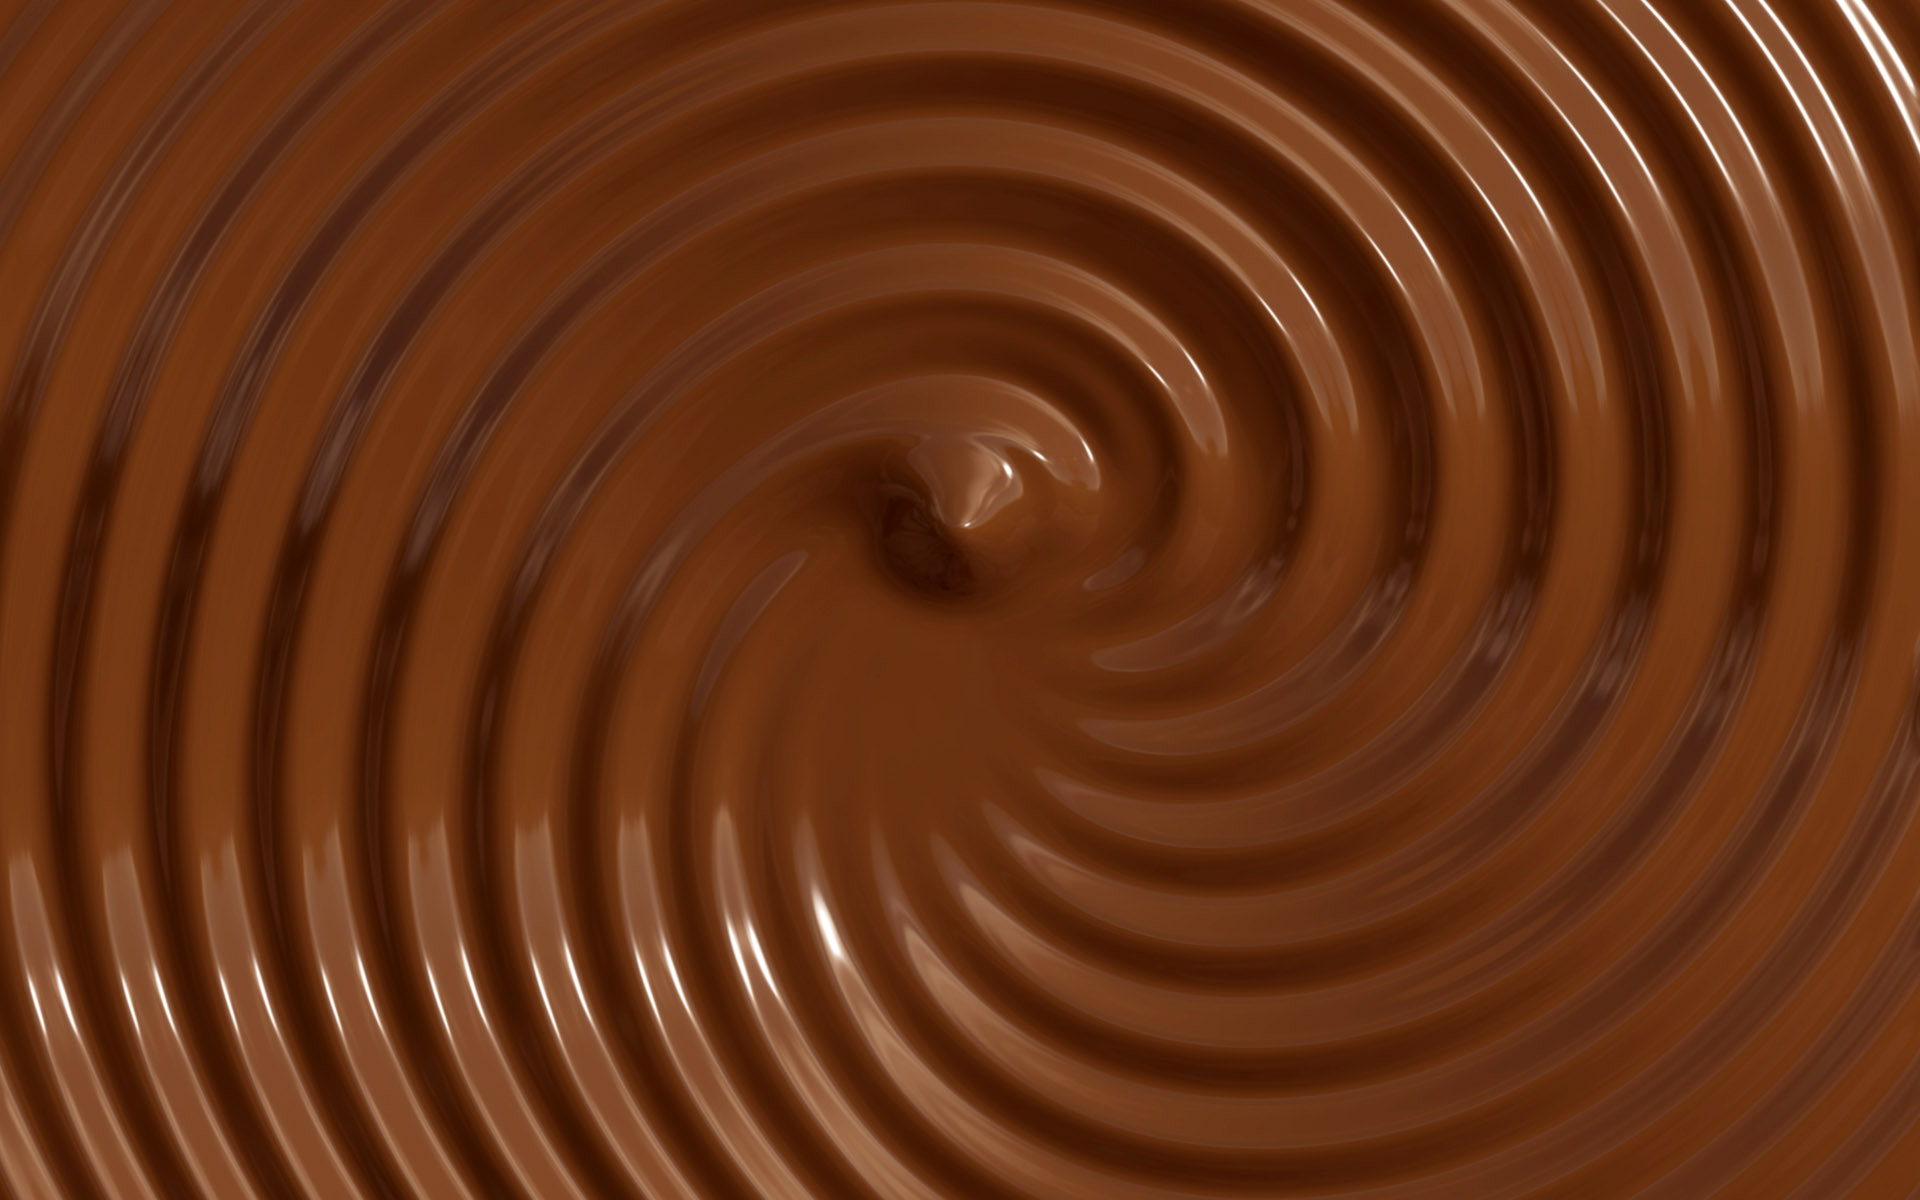 Chocolate Swirl Background By Amr Ahmed Photo 36353960